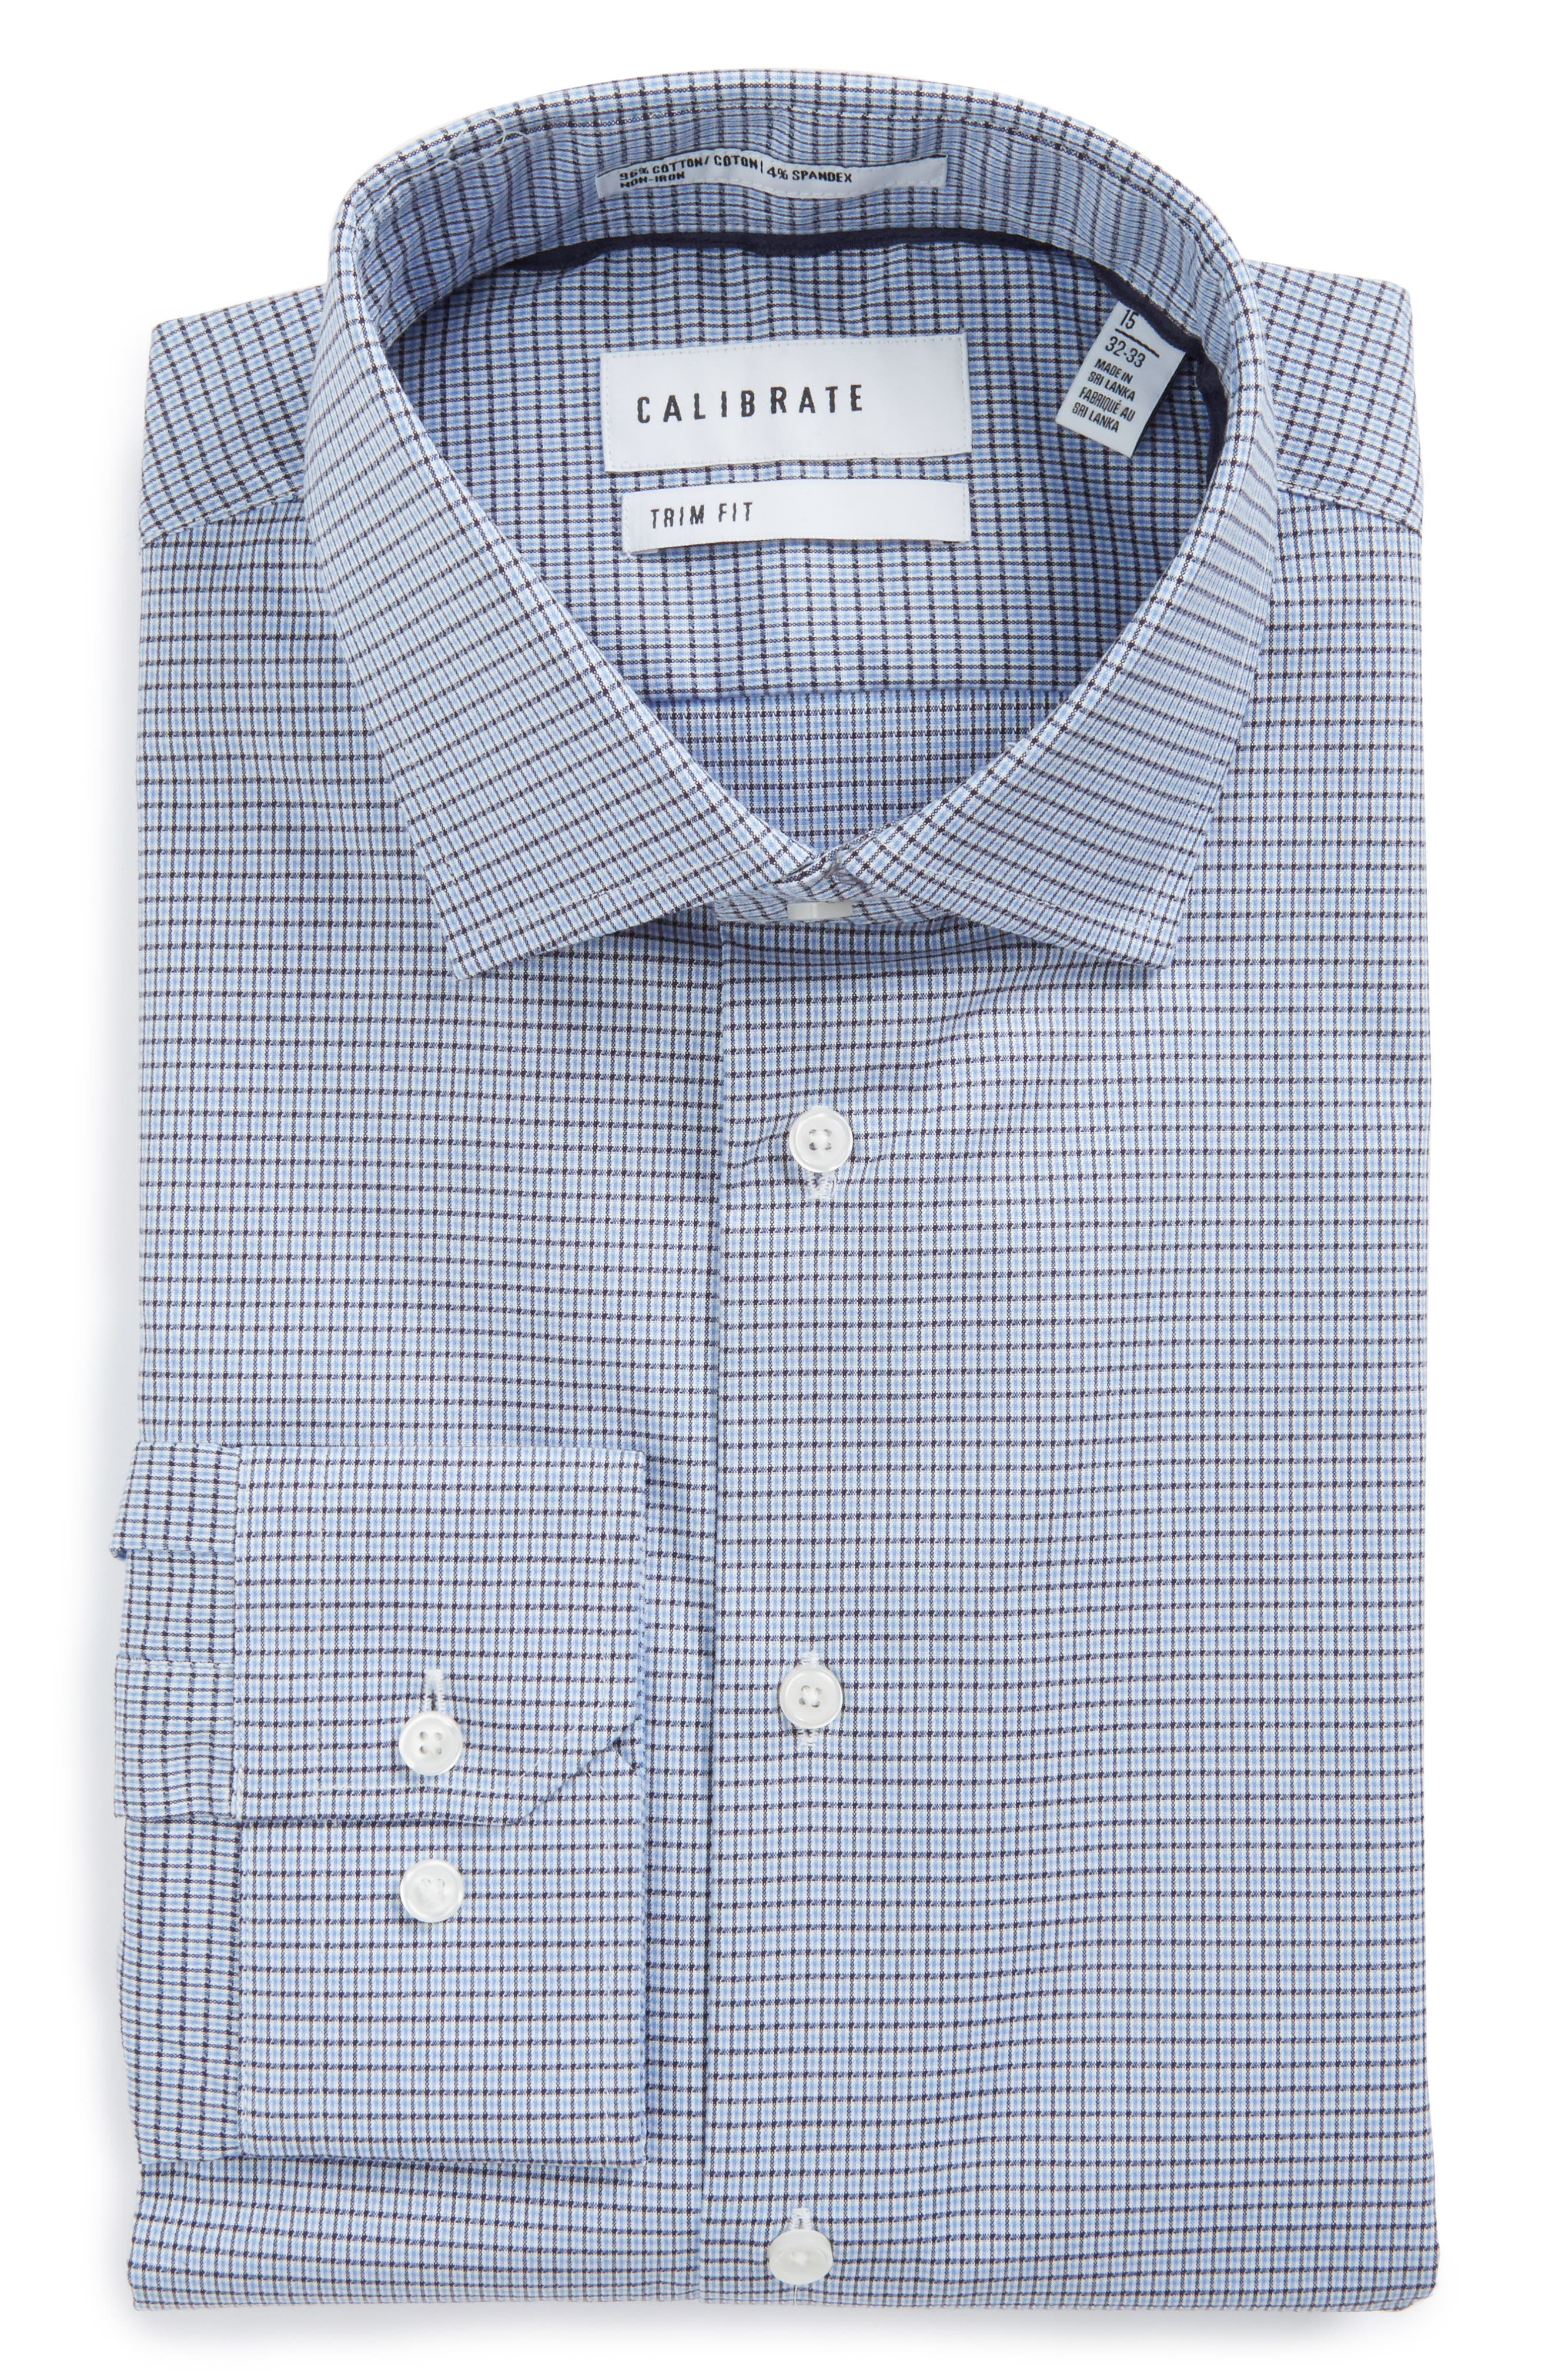 Main Image - Calibrate Trim Fit Non-Iron Check Stretch Dress Shirt